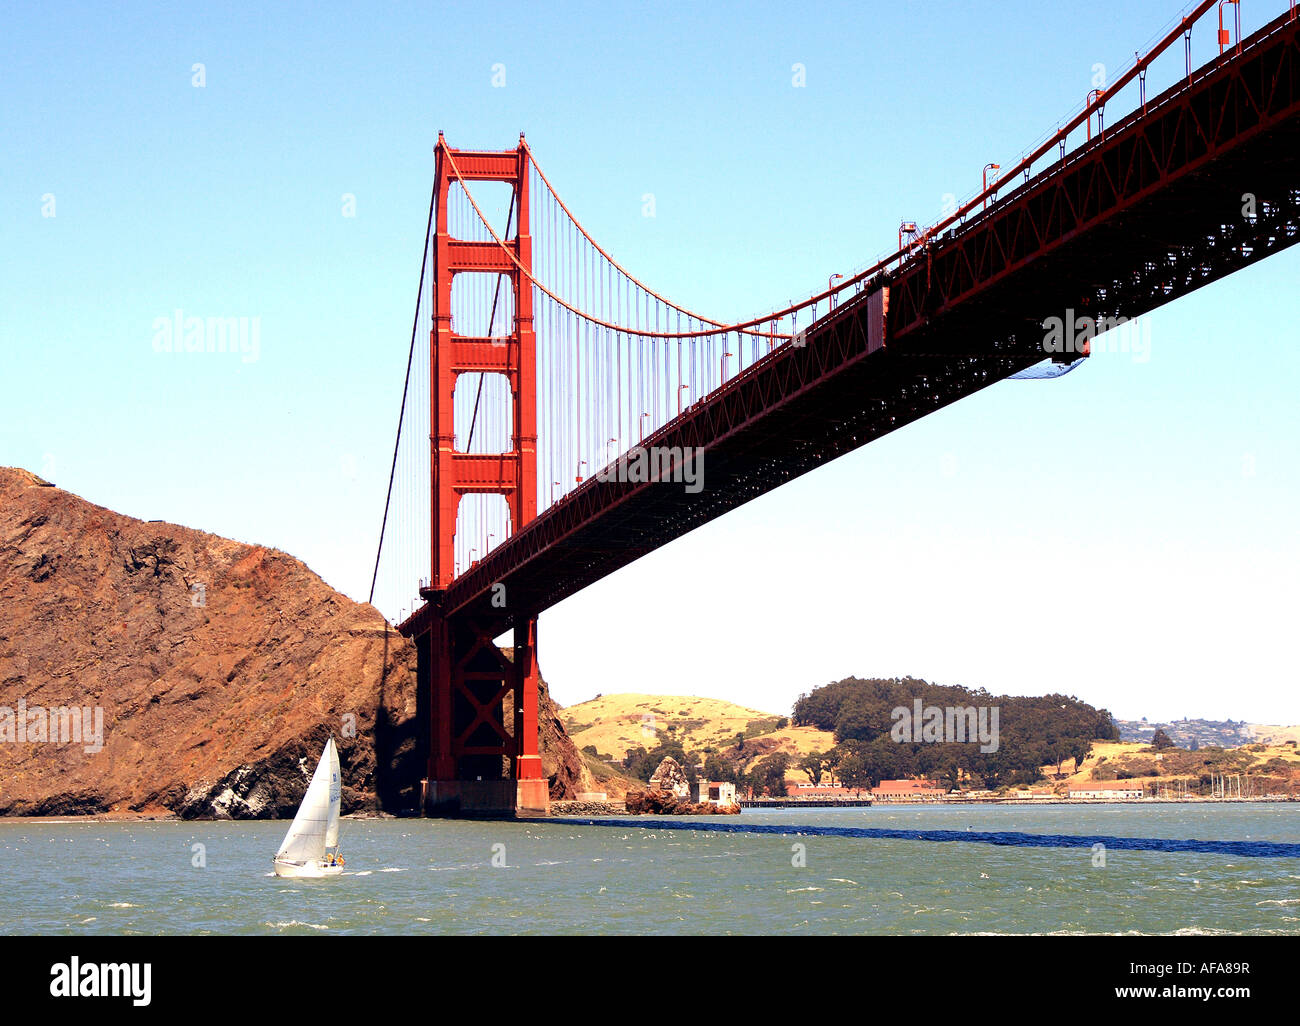 Horizonal view of a small sailboat passing under the northern span of the San Francisco Golden Gate Bridge - Stock Image